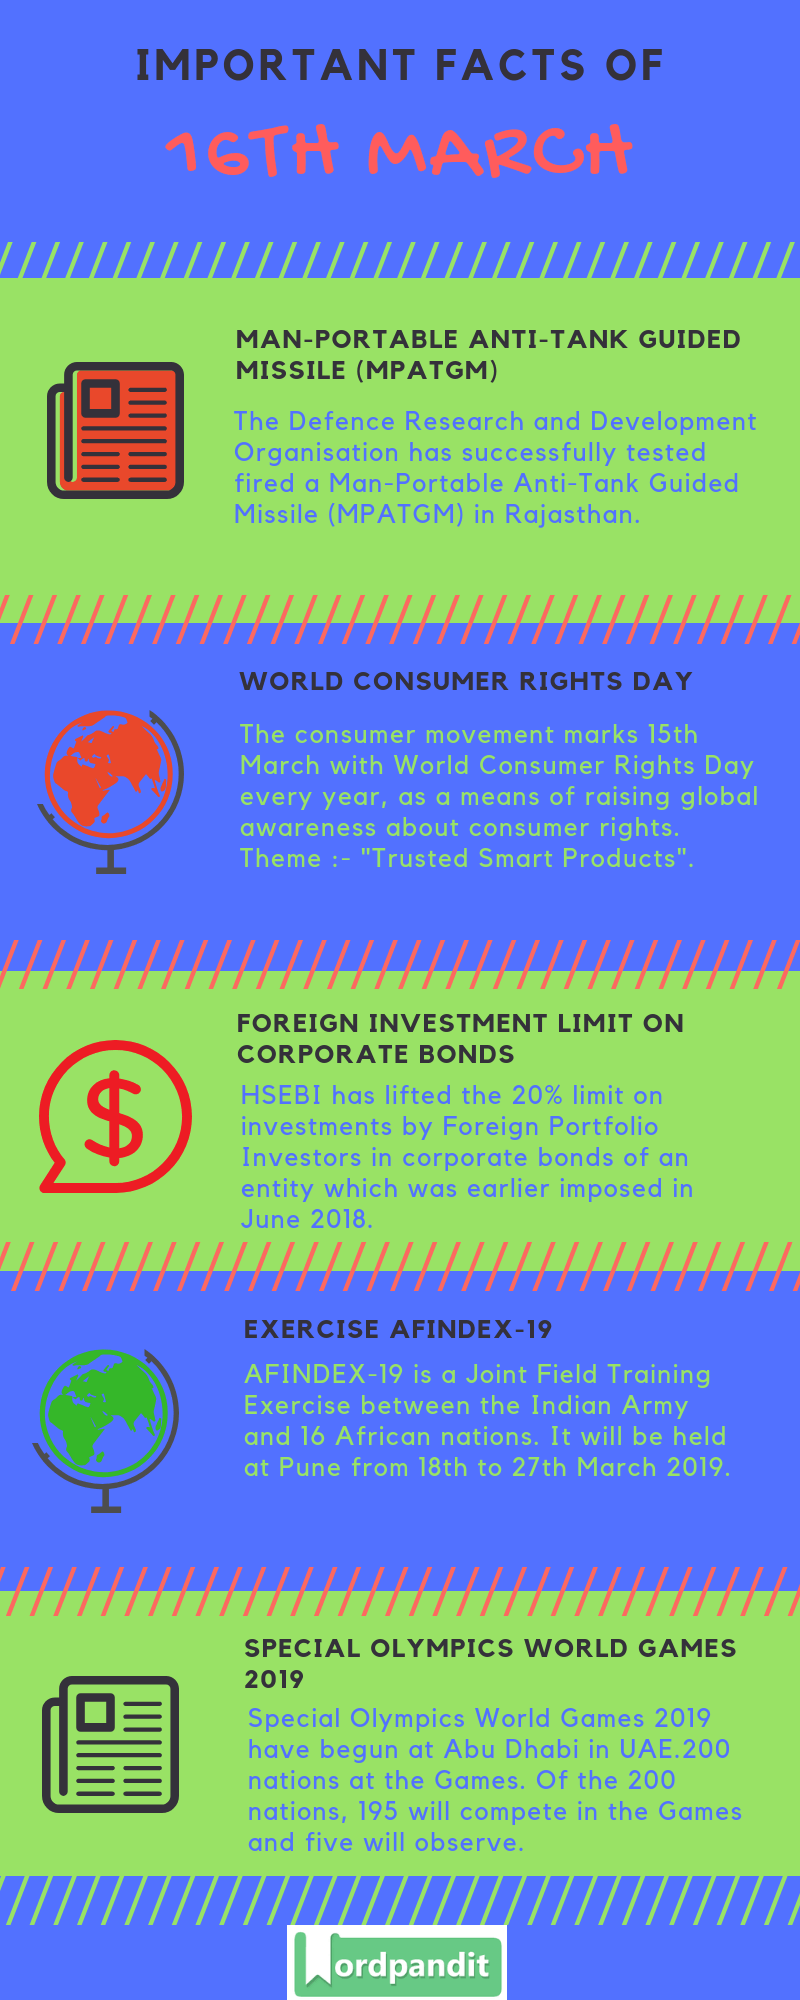 Daily Current Affairs 16 March 2019 Current Affairs Quiz 16 March 2019 Current Affairs Infographic